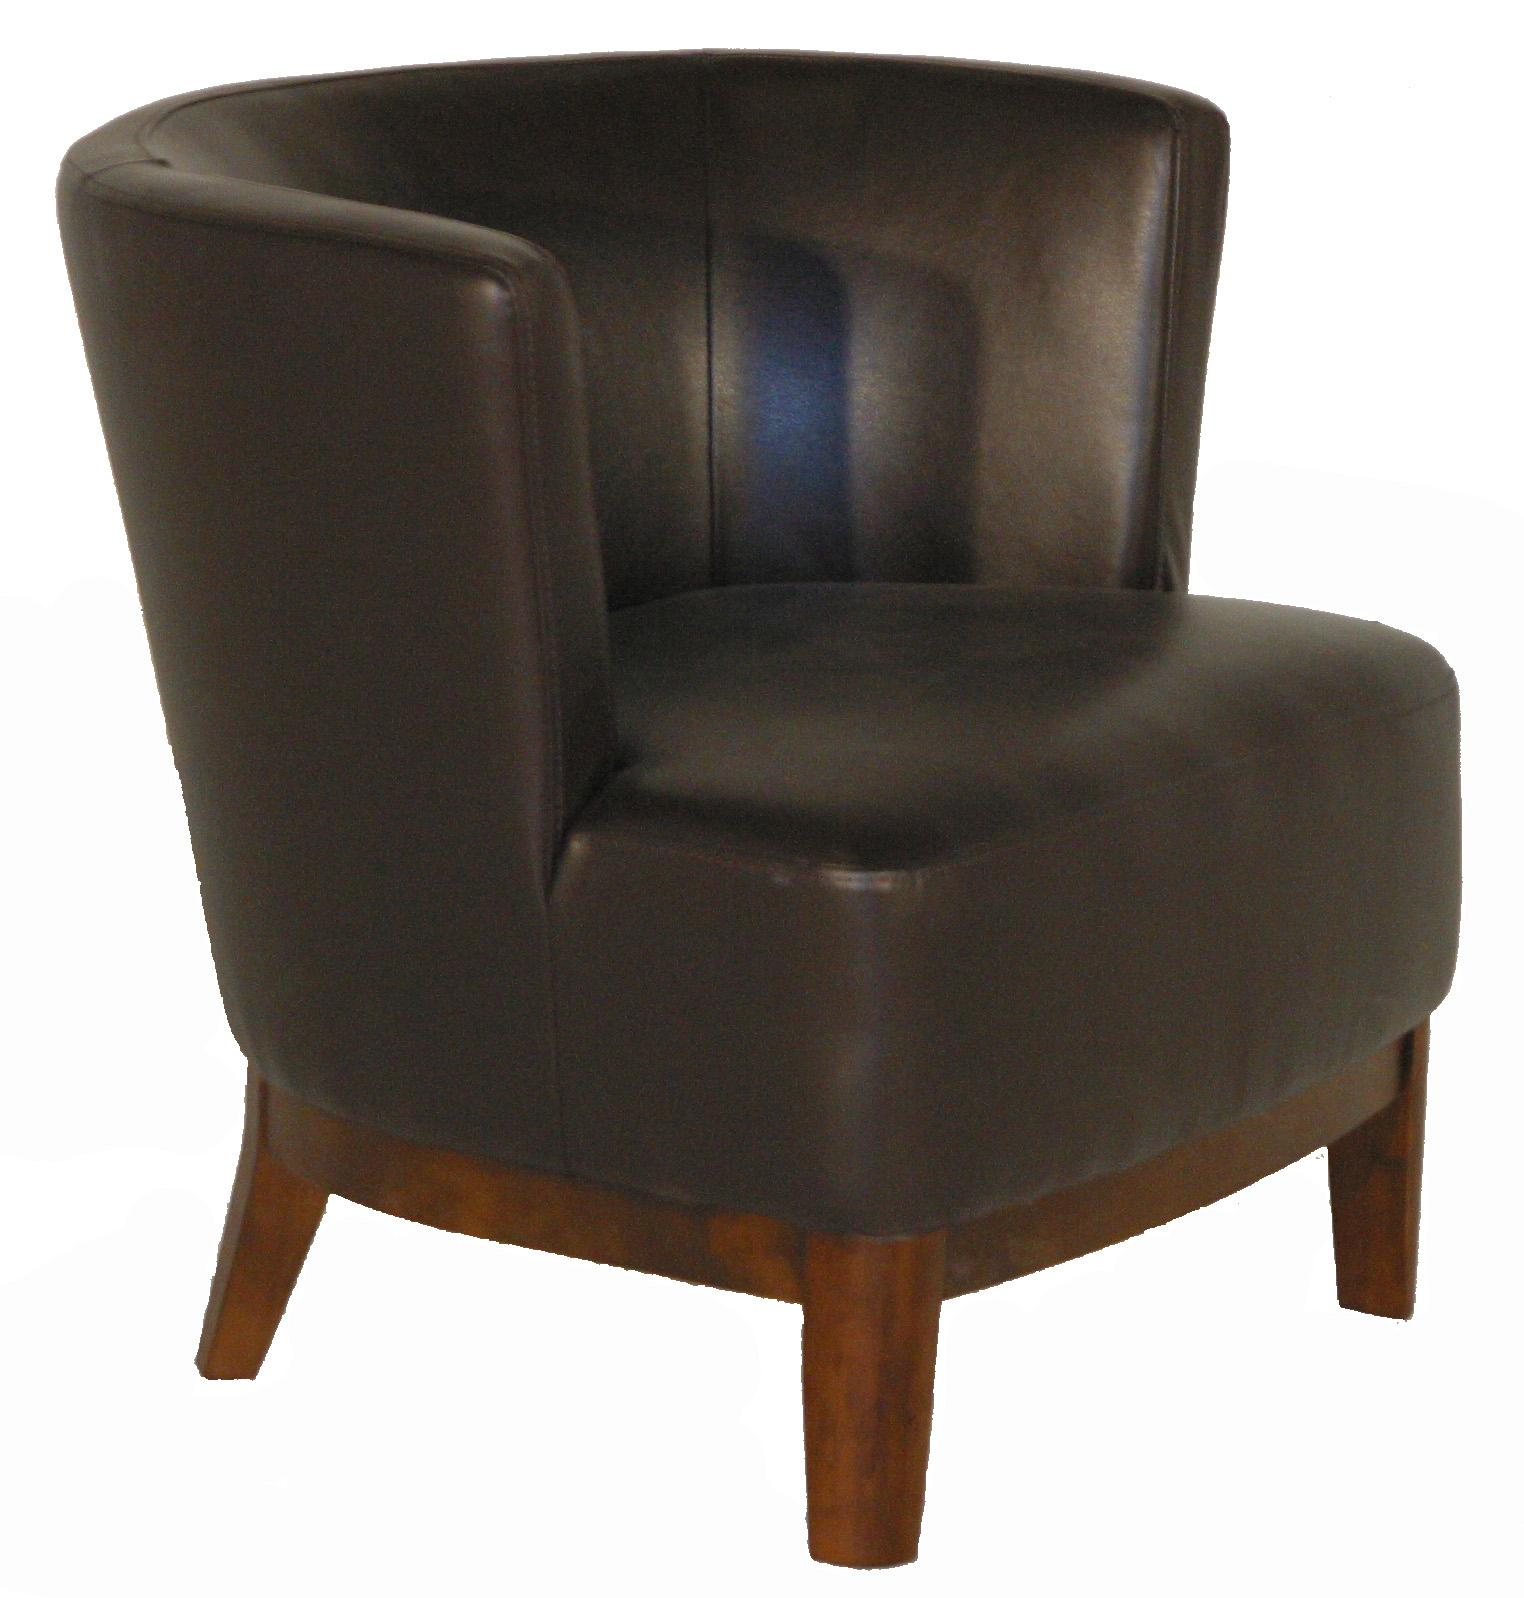 BFW Lifestyle A-773 Accent Chair - Item Number: A-773-DU523